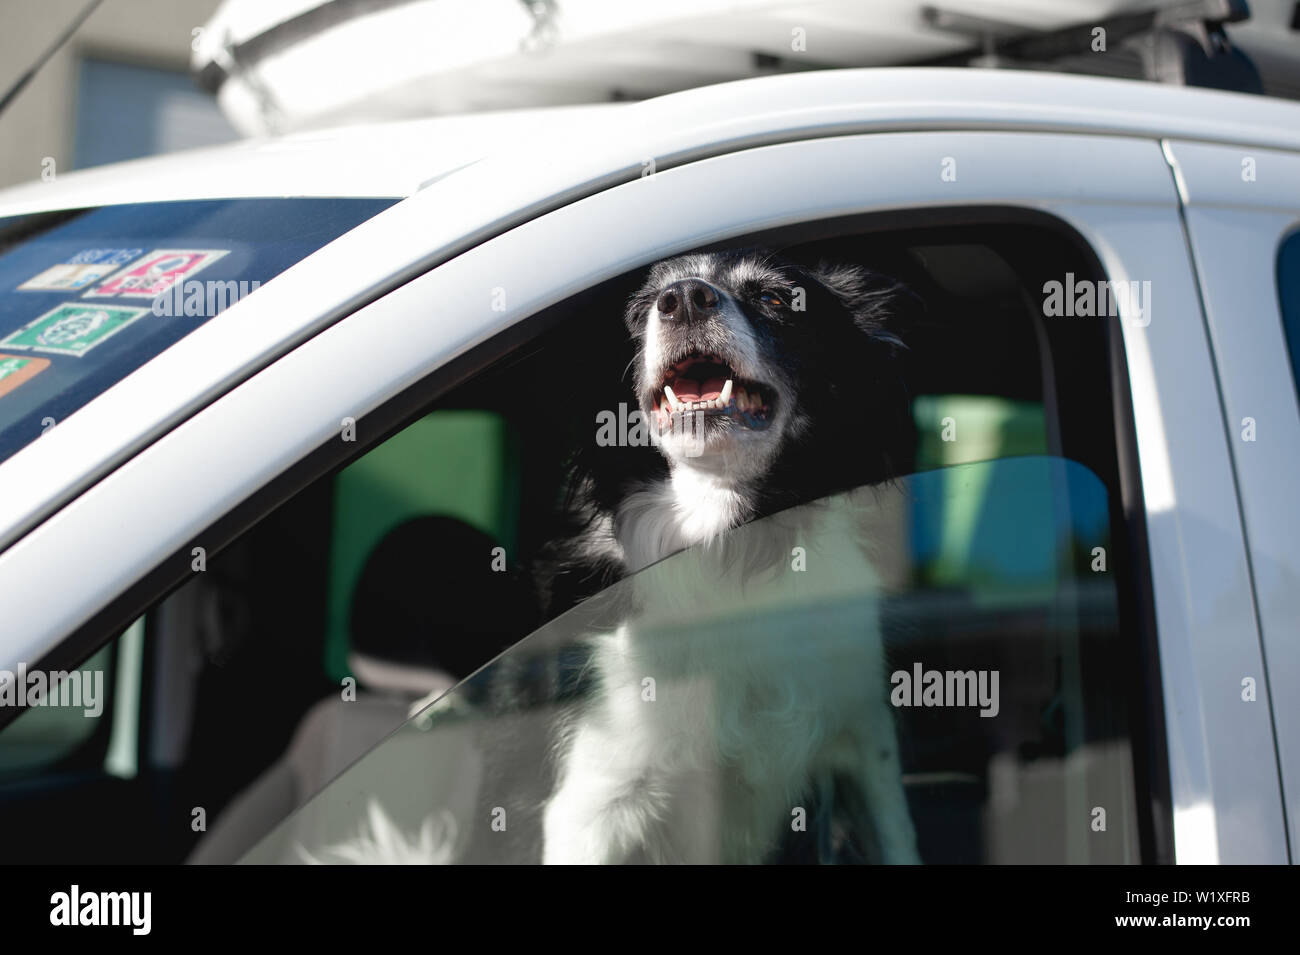 Dog pokes its muzzle out of the car window. Black and White Border Collie in car in hot summer. - Stock Image